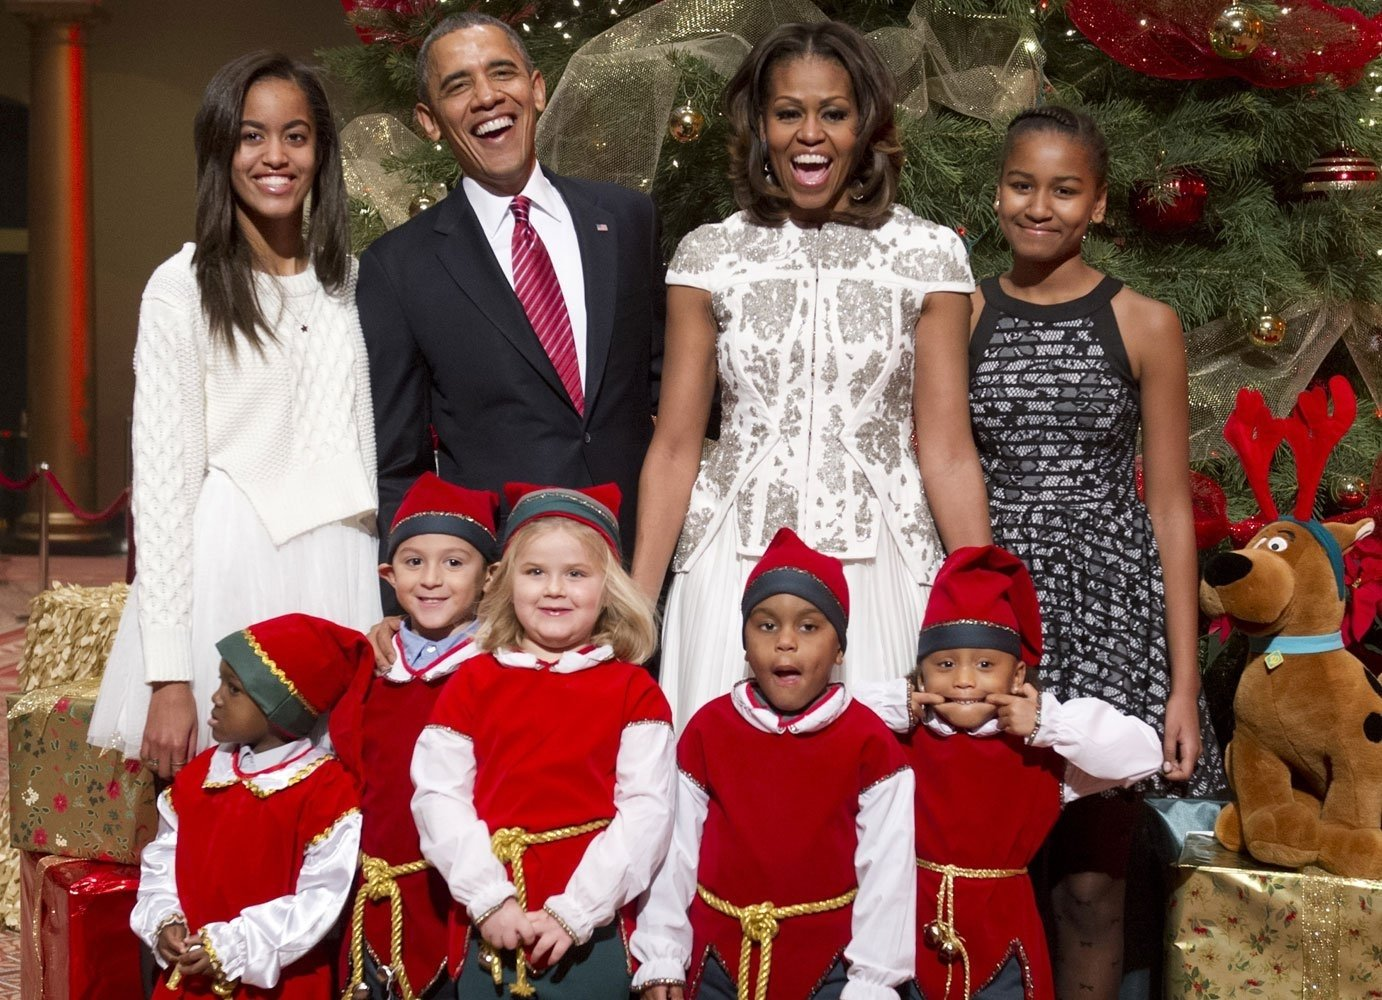 10 Cute Cute Family Christmas Picture Ideas cute first family christmas photo ideas compilation photo and 2020